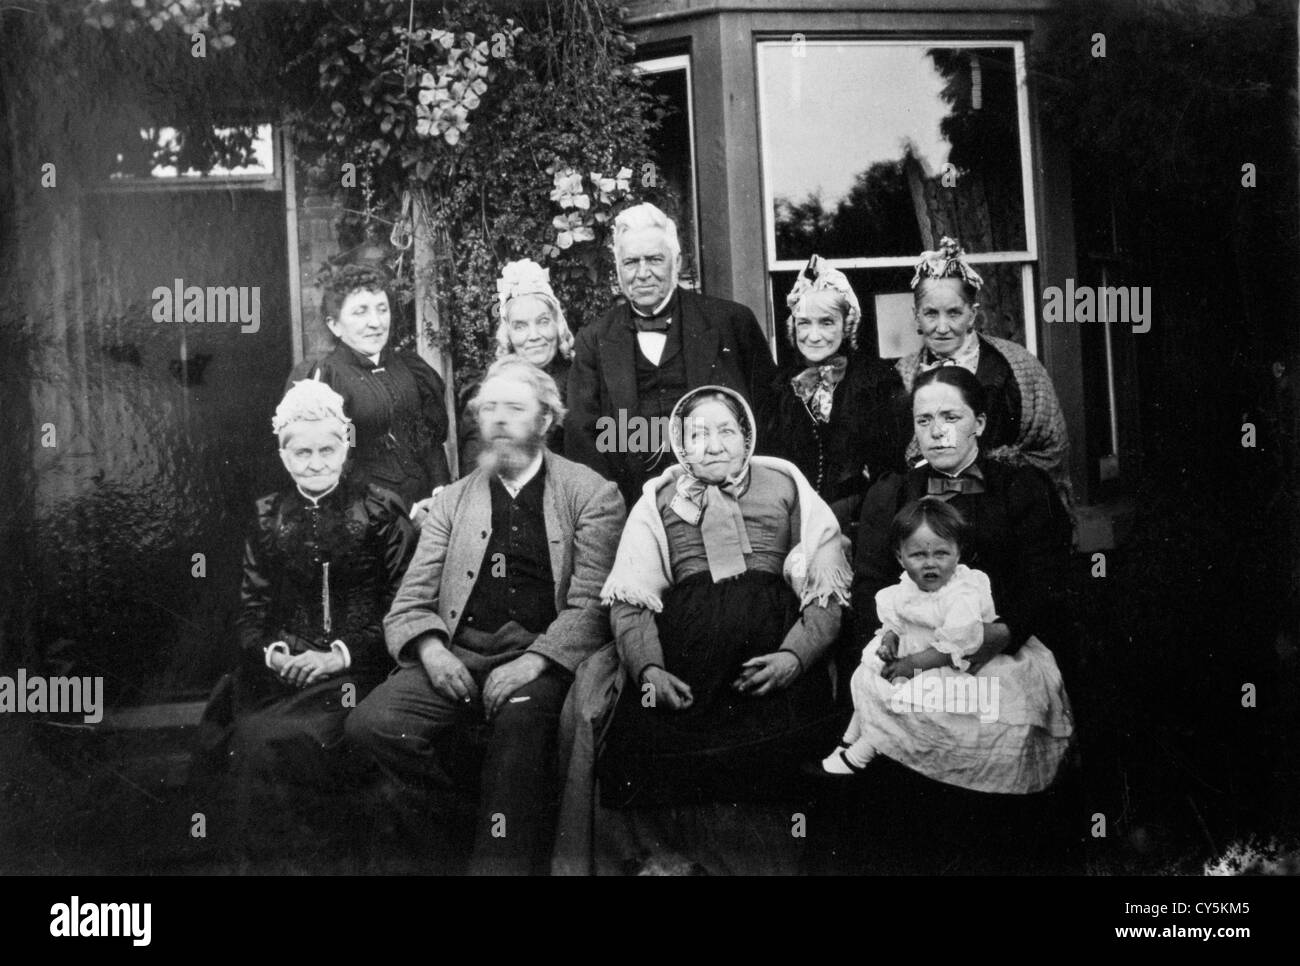 Victorian vintage family group photographs Birmingham England UK 1890s HOMER SYKES relatives of this content supplier. - Stock Image